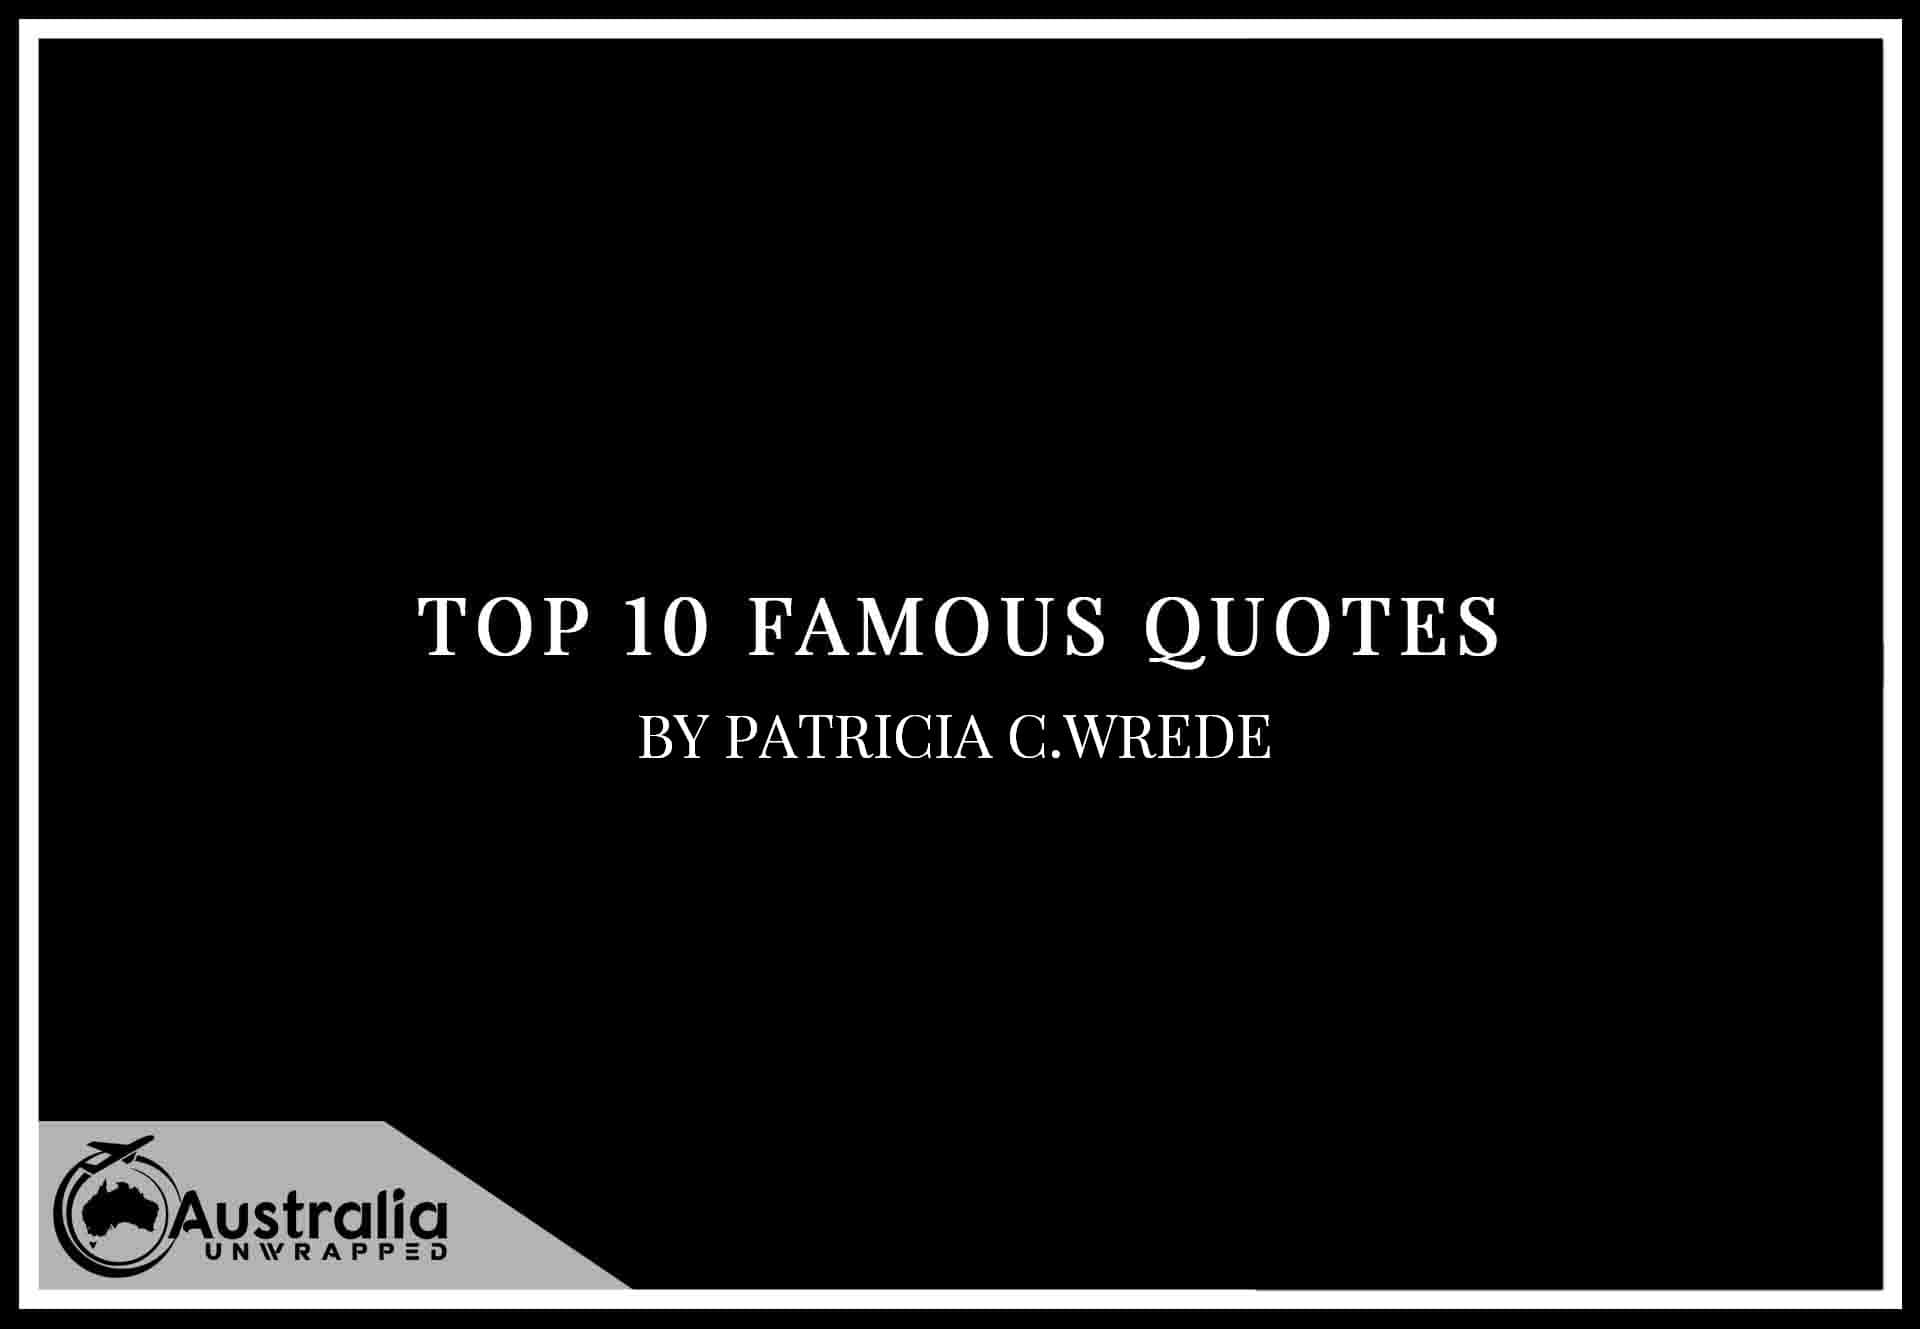 Top 10 Famous Quotes by Author Patricia C. Wrede